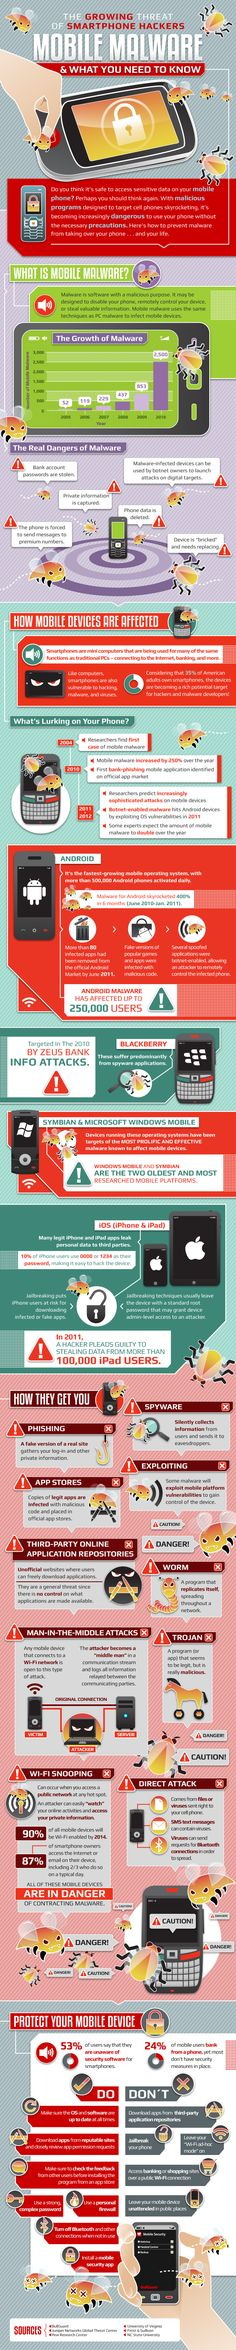 The growing threat of smartphone hackers, mobile malware and what you need to know.